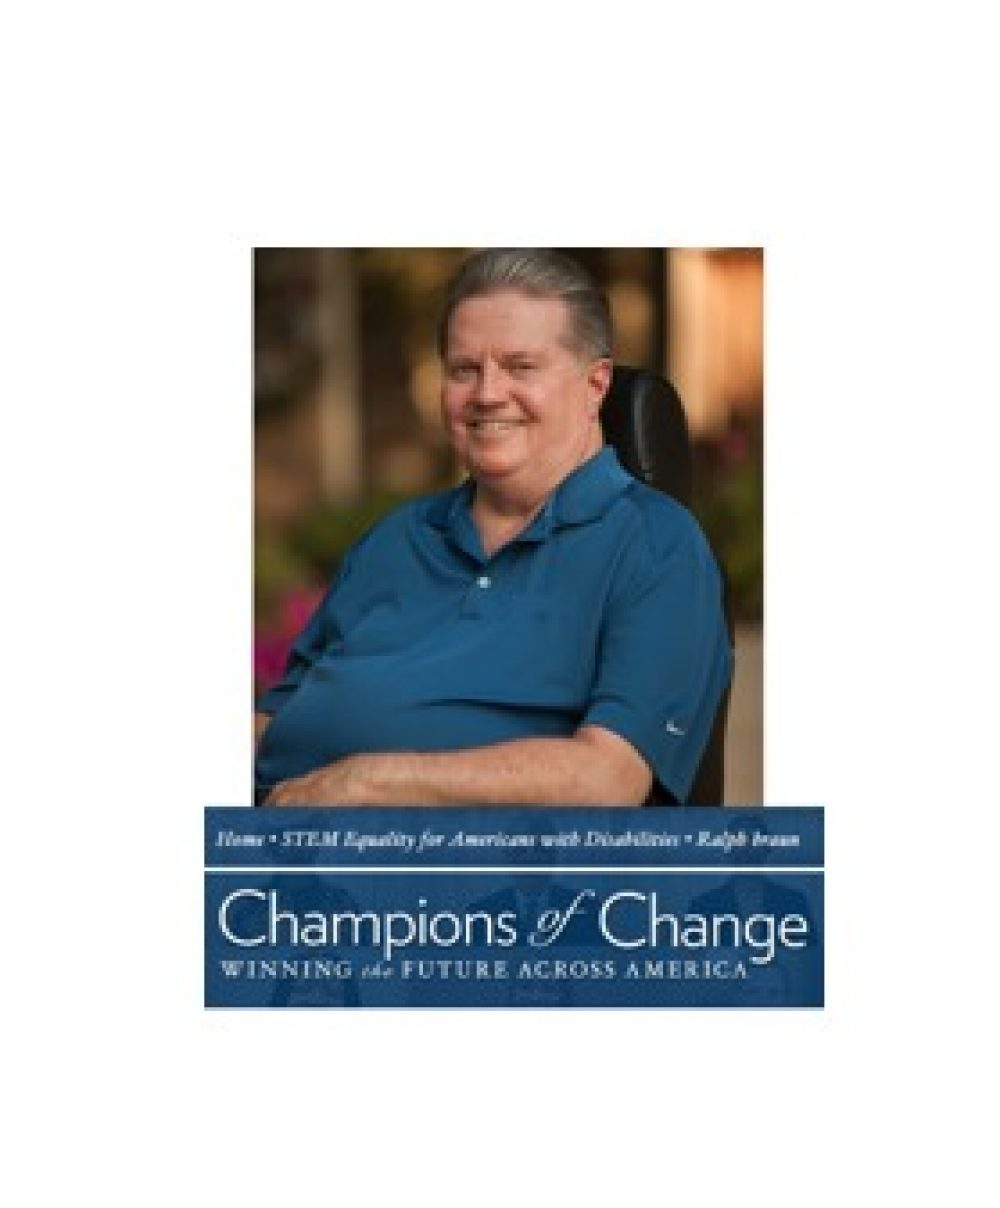 Ralph Braun Receives White House Champion of Change Distinction